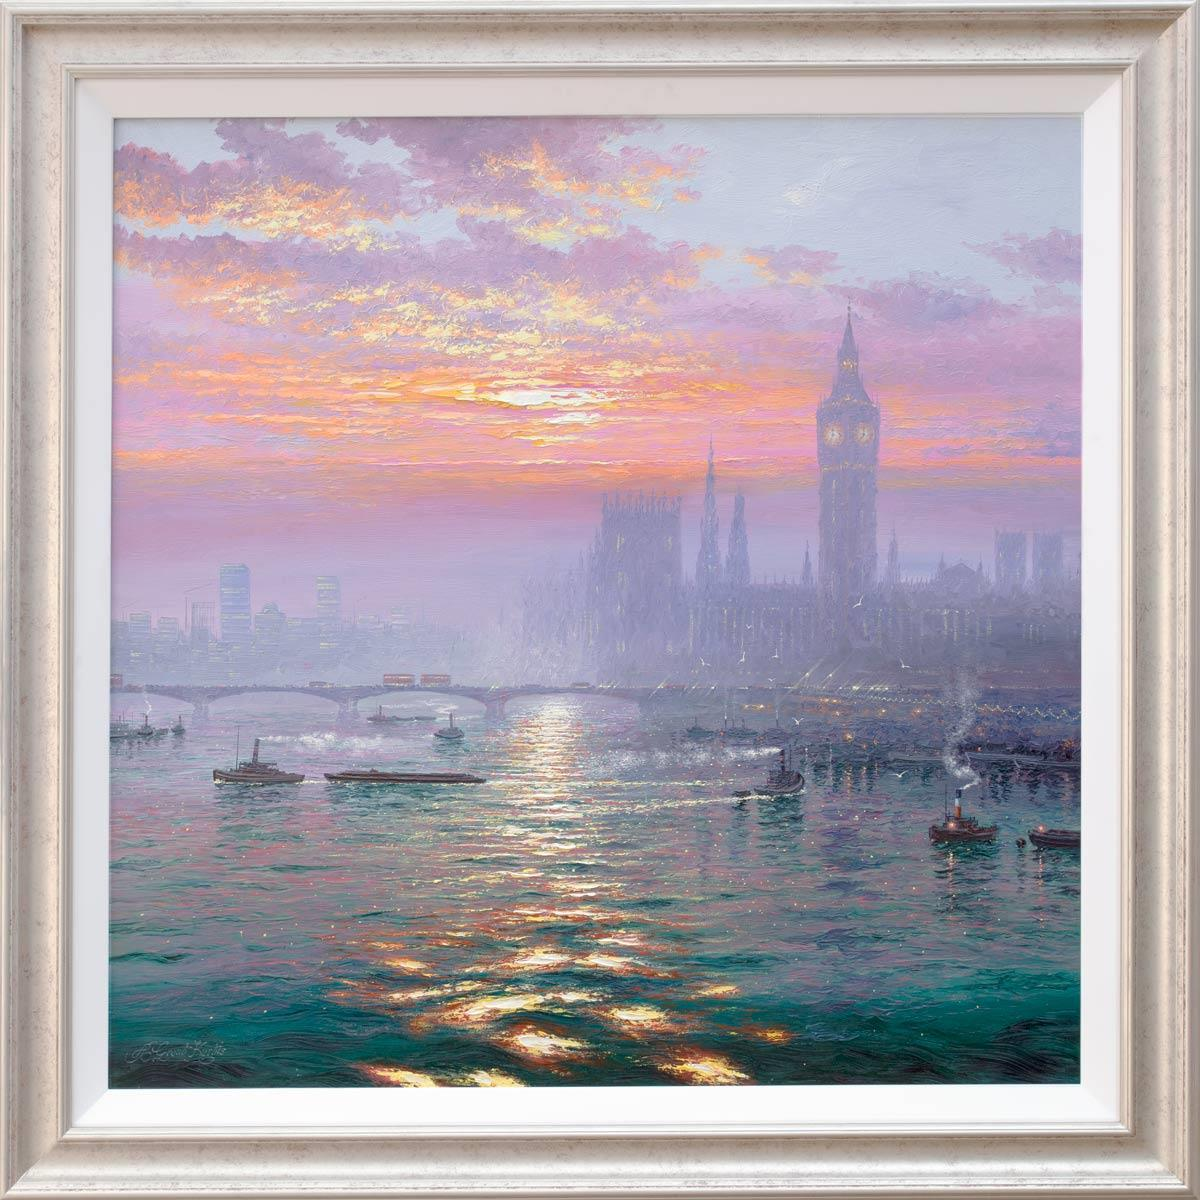 Sunshine Sparkles and Andrew Grant Kurtis Framed